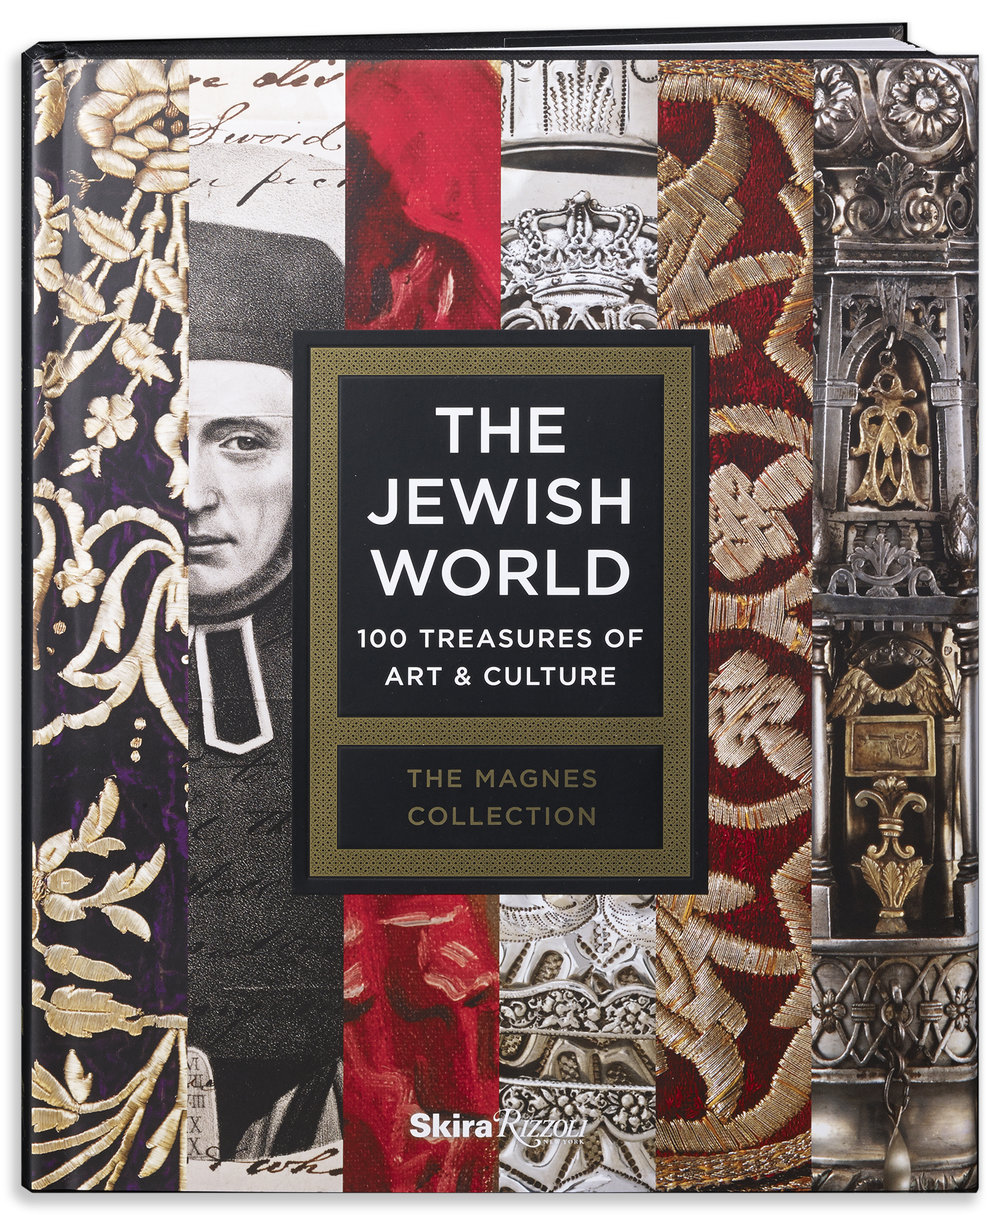 The Jewish World: 100 Treasures of Art & Culture